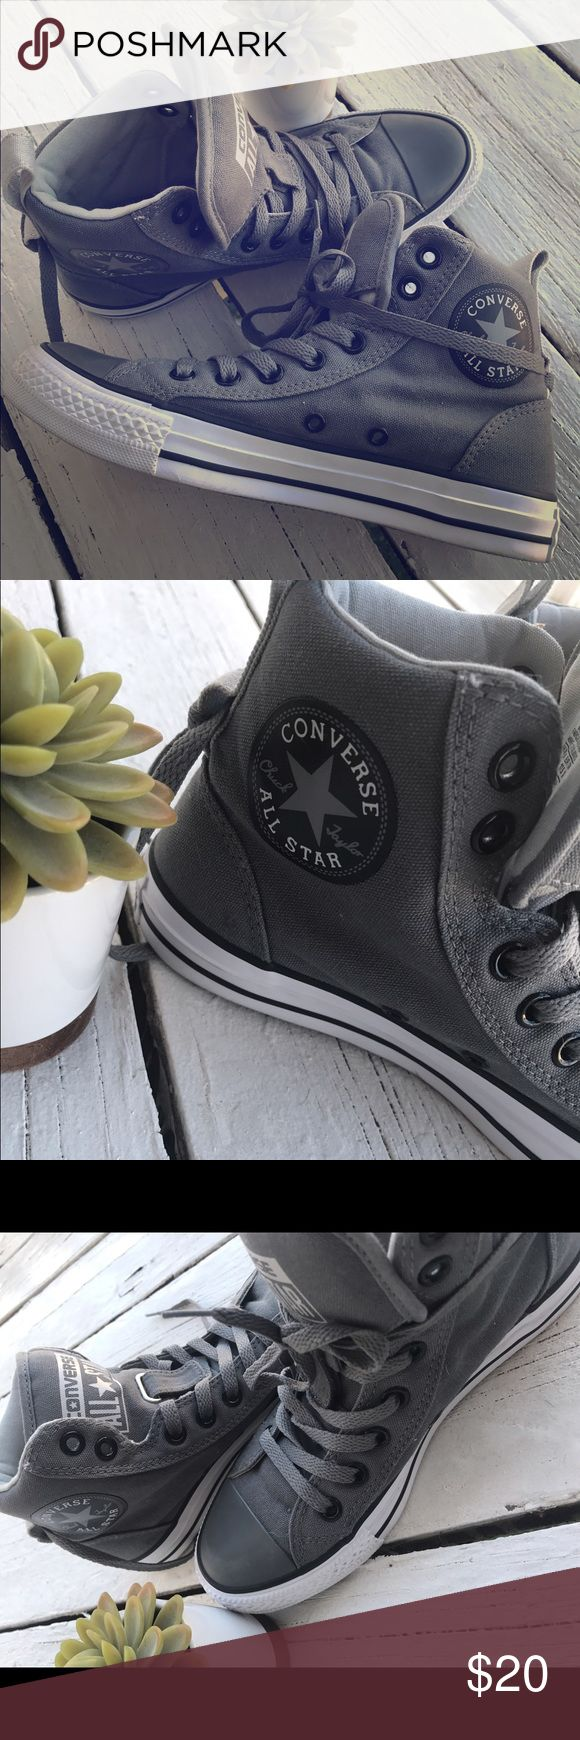 Converse Hi-Top Chuck Taylor Sneakers Converse Hi-Top Chuck Taylor SneakersSIZE 7 / Gently used, EXCELLENT condition Converse Shoes